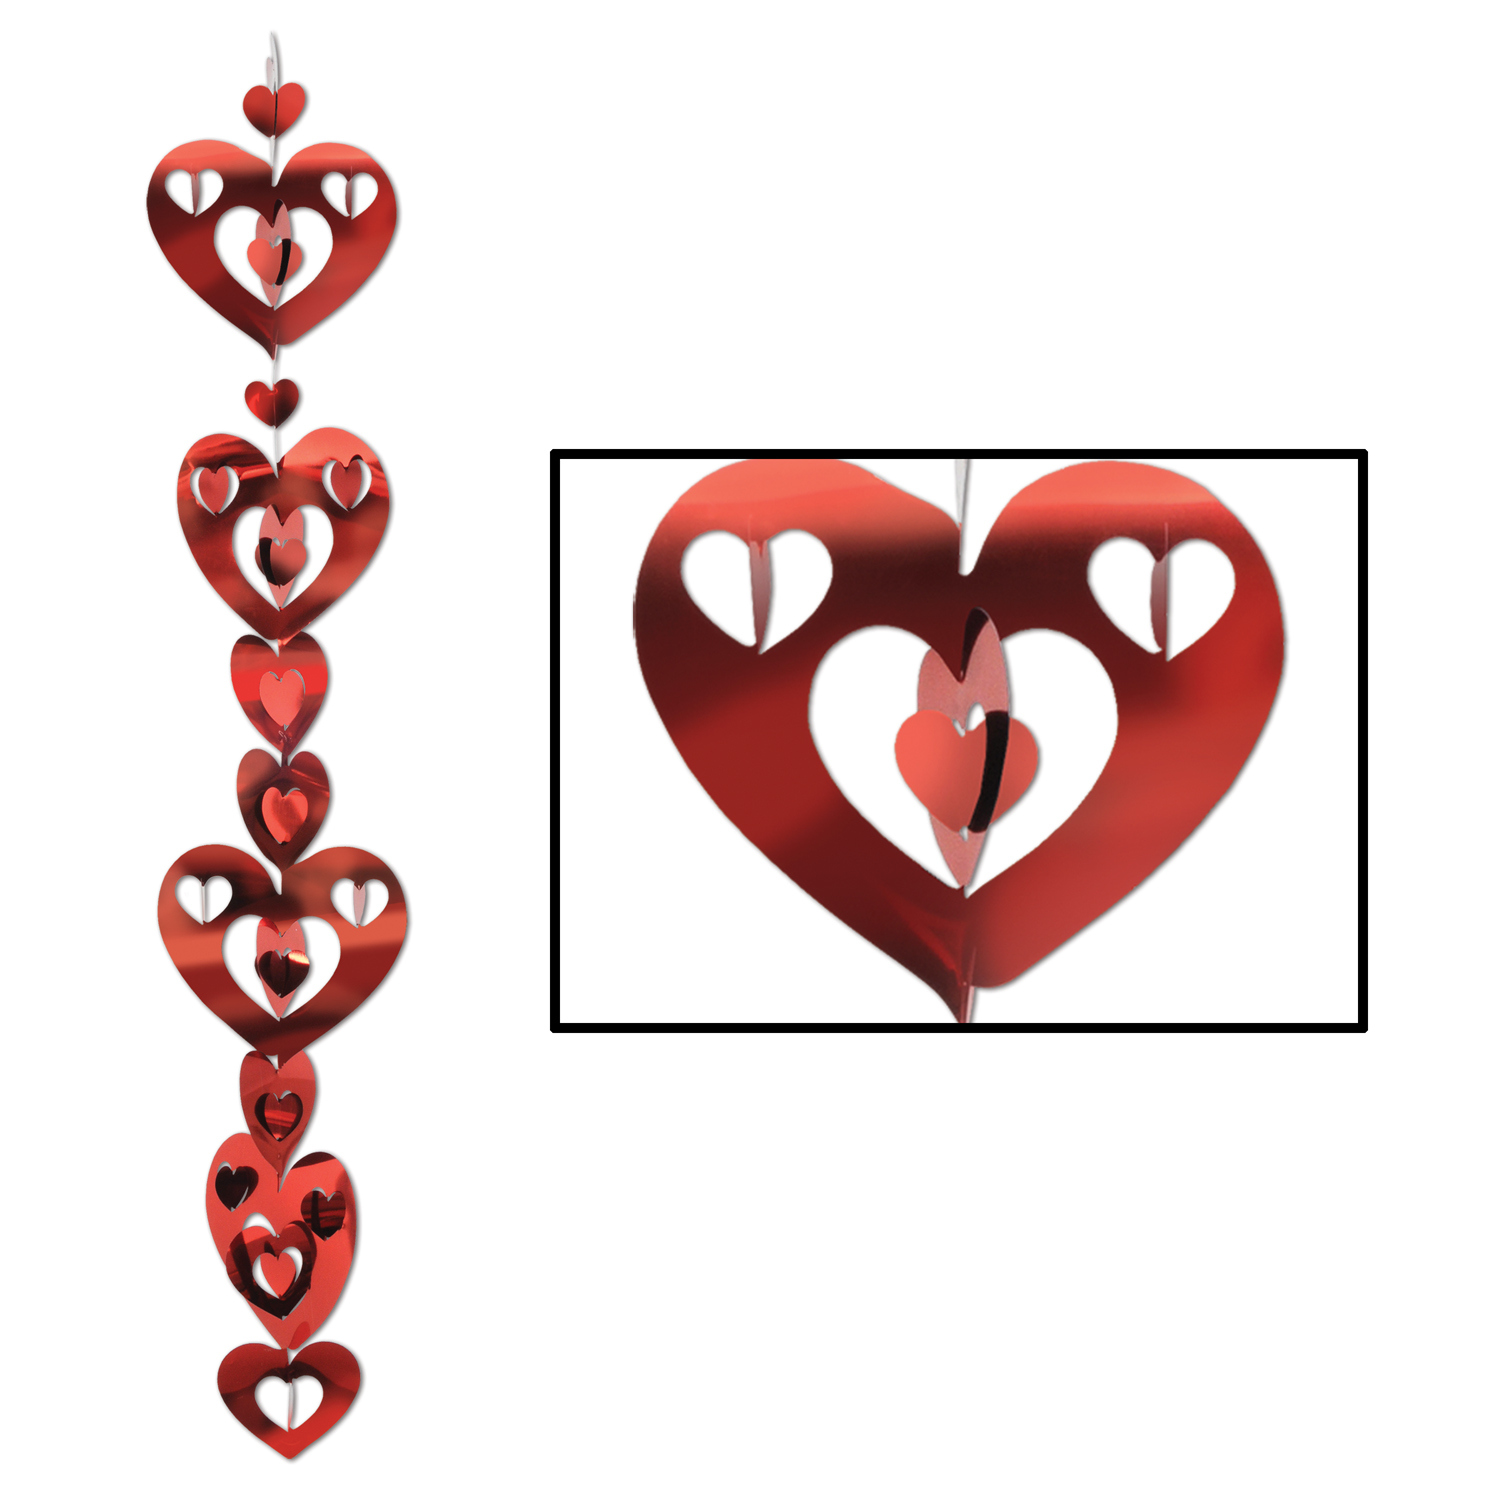 3-D Prismatic Heart Gleam N Garland (Pack of 12) .